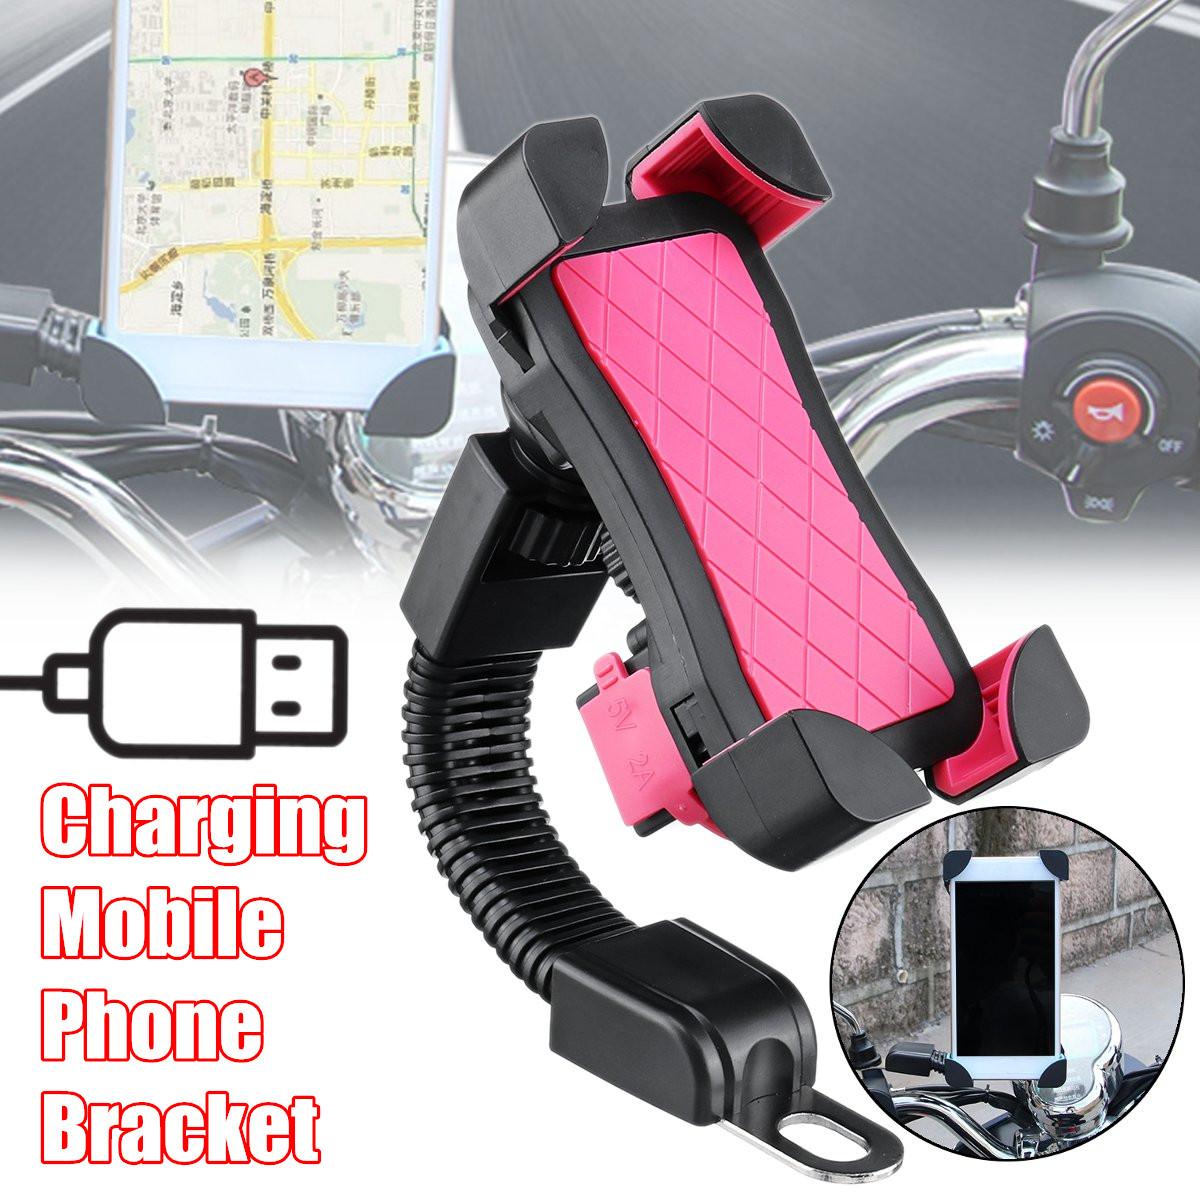 3.5-7inch Mobile Phone Houlder Bracket 2.1A USB Charger Motorcycle Mount Charging Chip